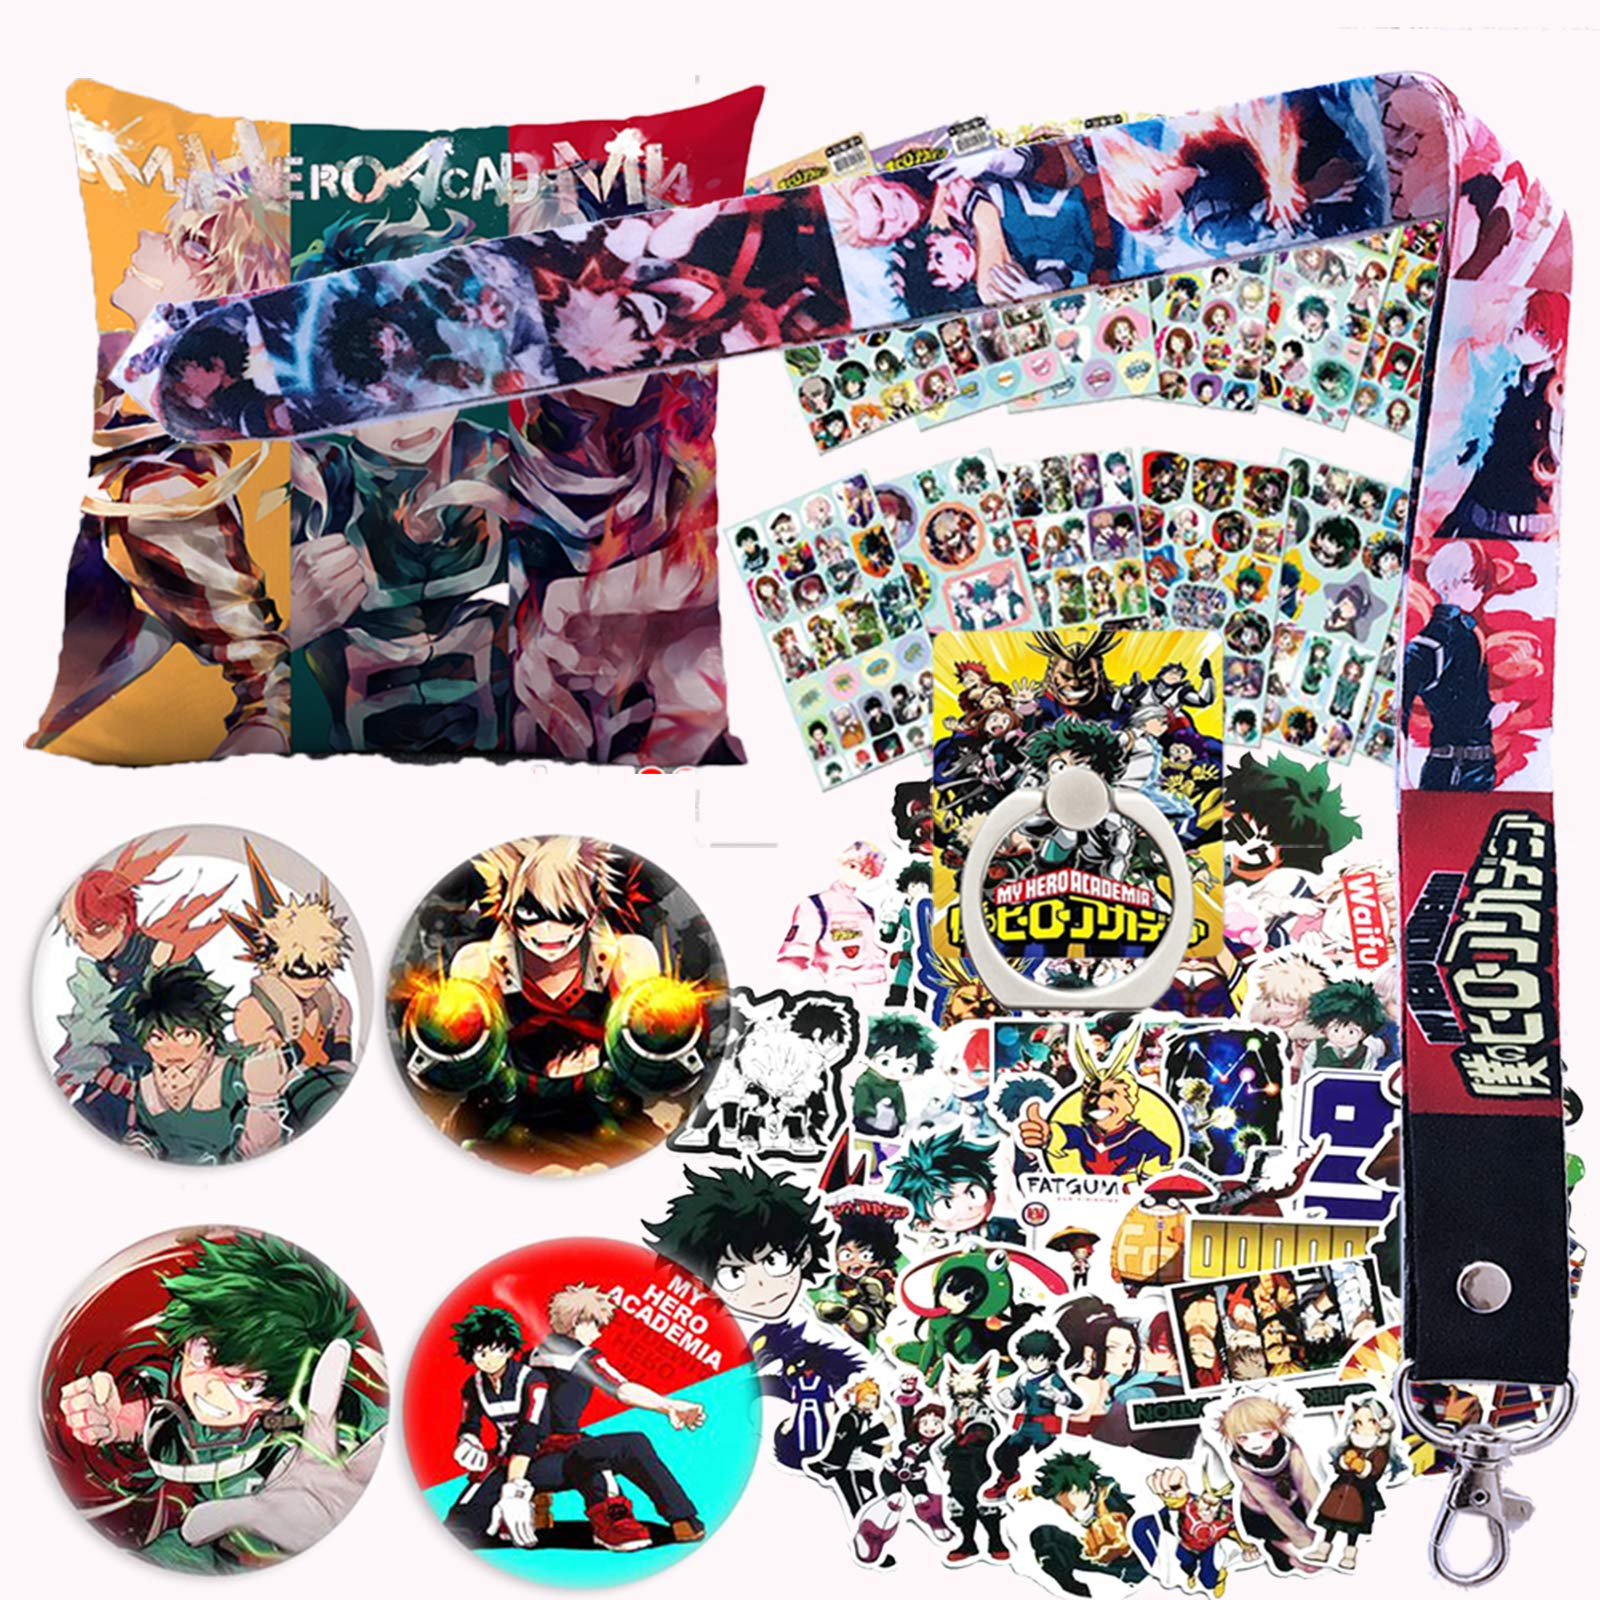 My Hero Academia Pillow Cover Stickers Gift Set - 1 MHA Pillow Case, 12 Sheets of Stickers, 73 Carton Stickers, 4 Button Pins, 1 Lanyard, 1 Phone Ring Holder for Anime MHA Fans